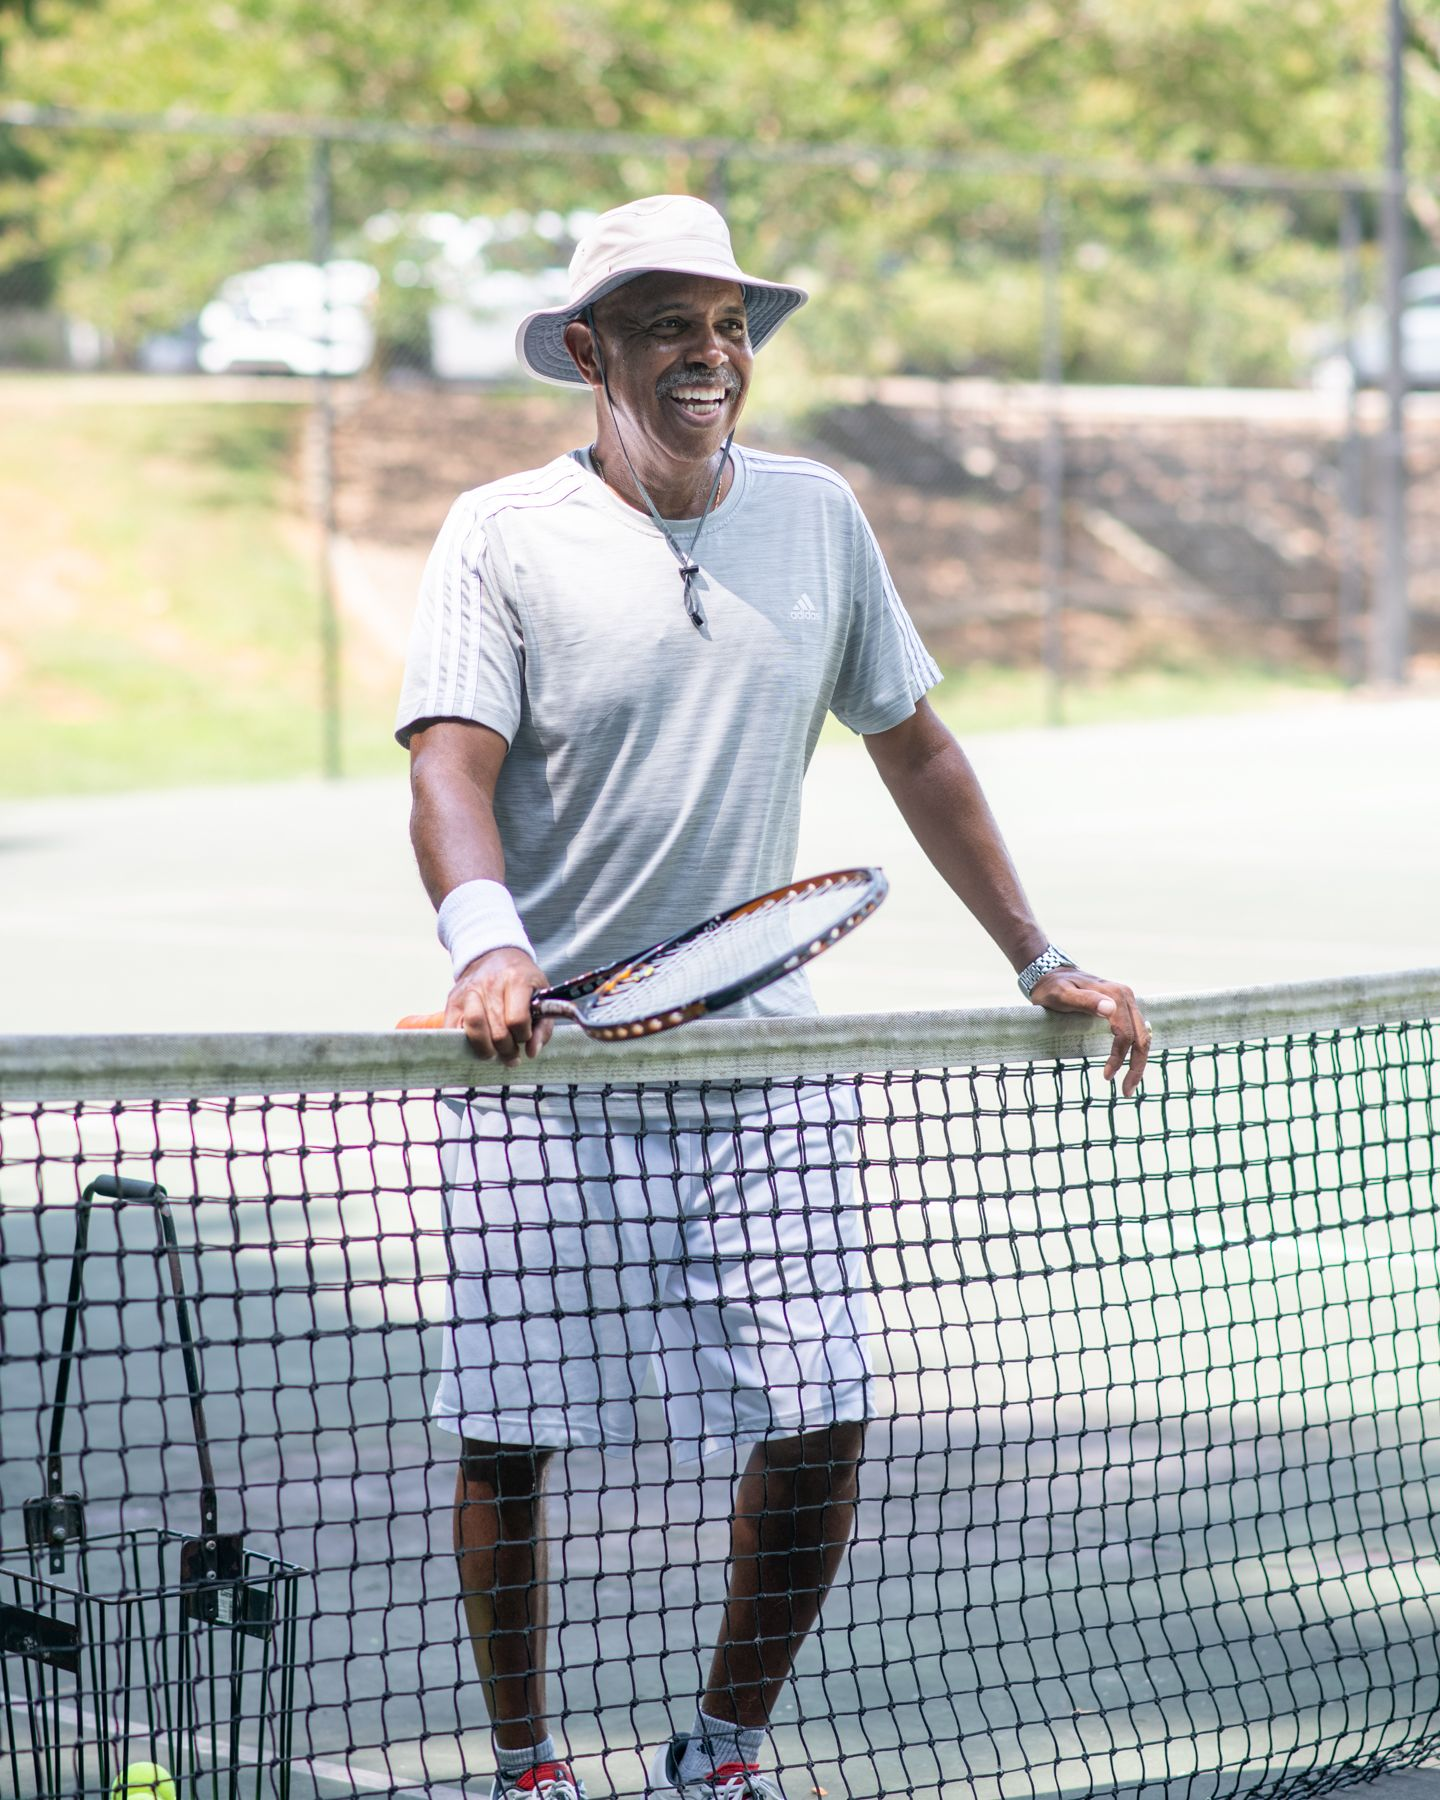 Junius Chatman, Tennis Director at the Oak Hollow Tennis Center in High Point, NC, laughs at the camera.